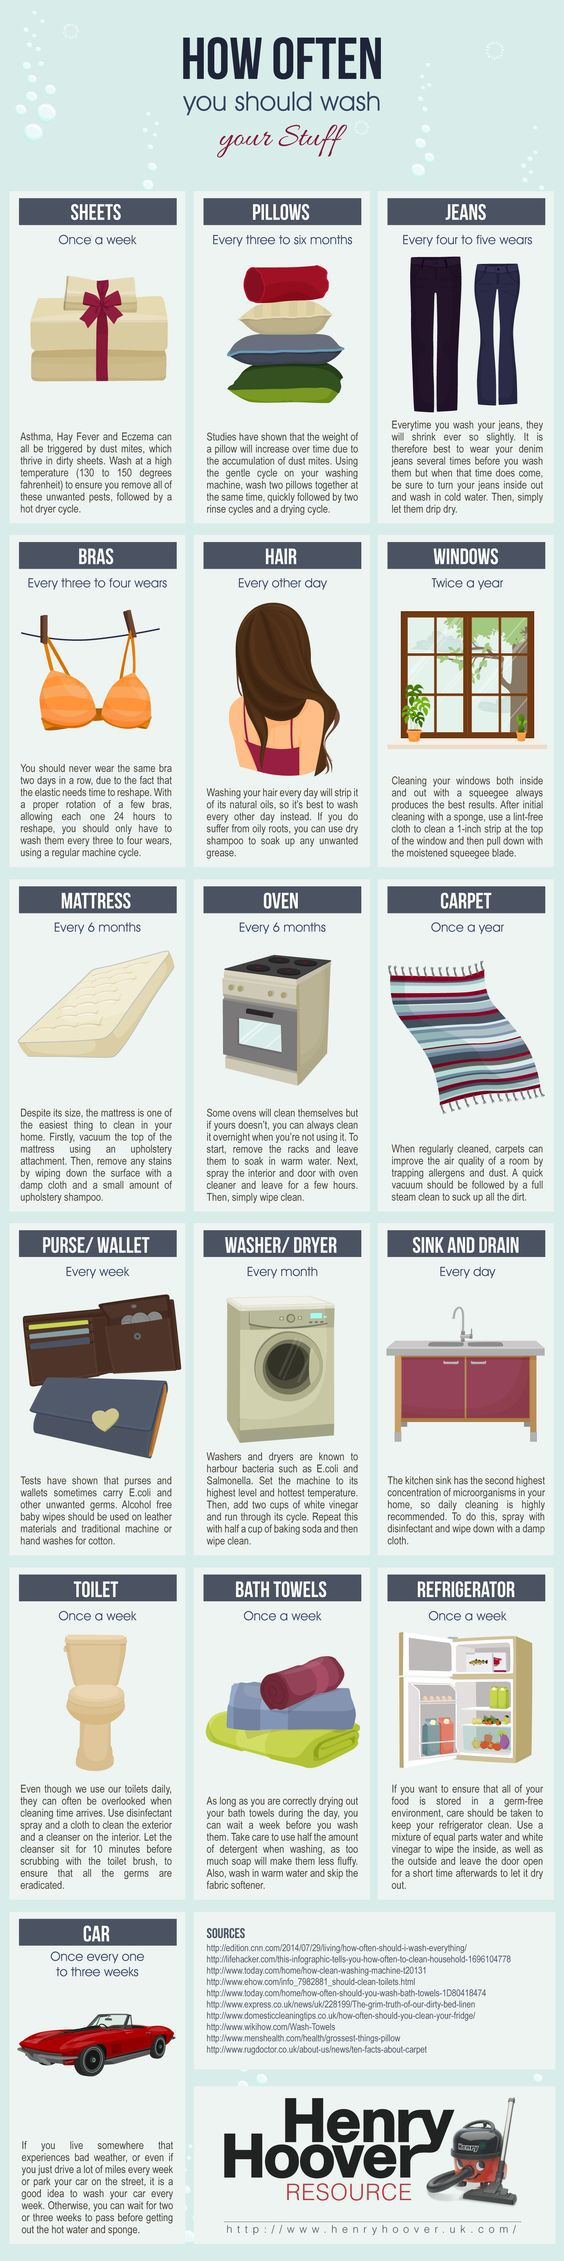 how often to clean hair, bed, jeans, laundry, sheets, toilet and more